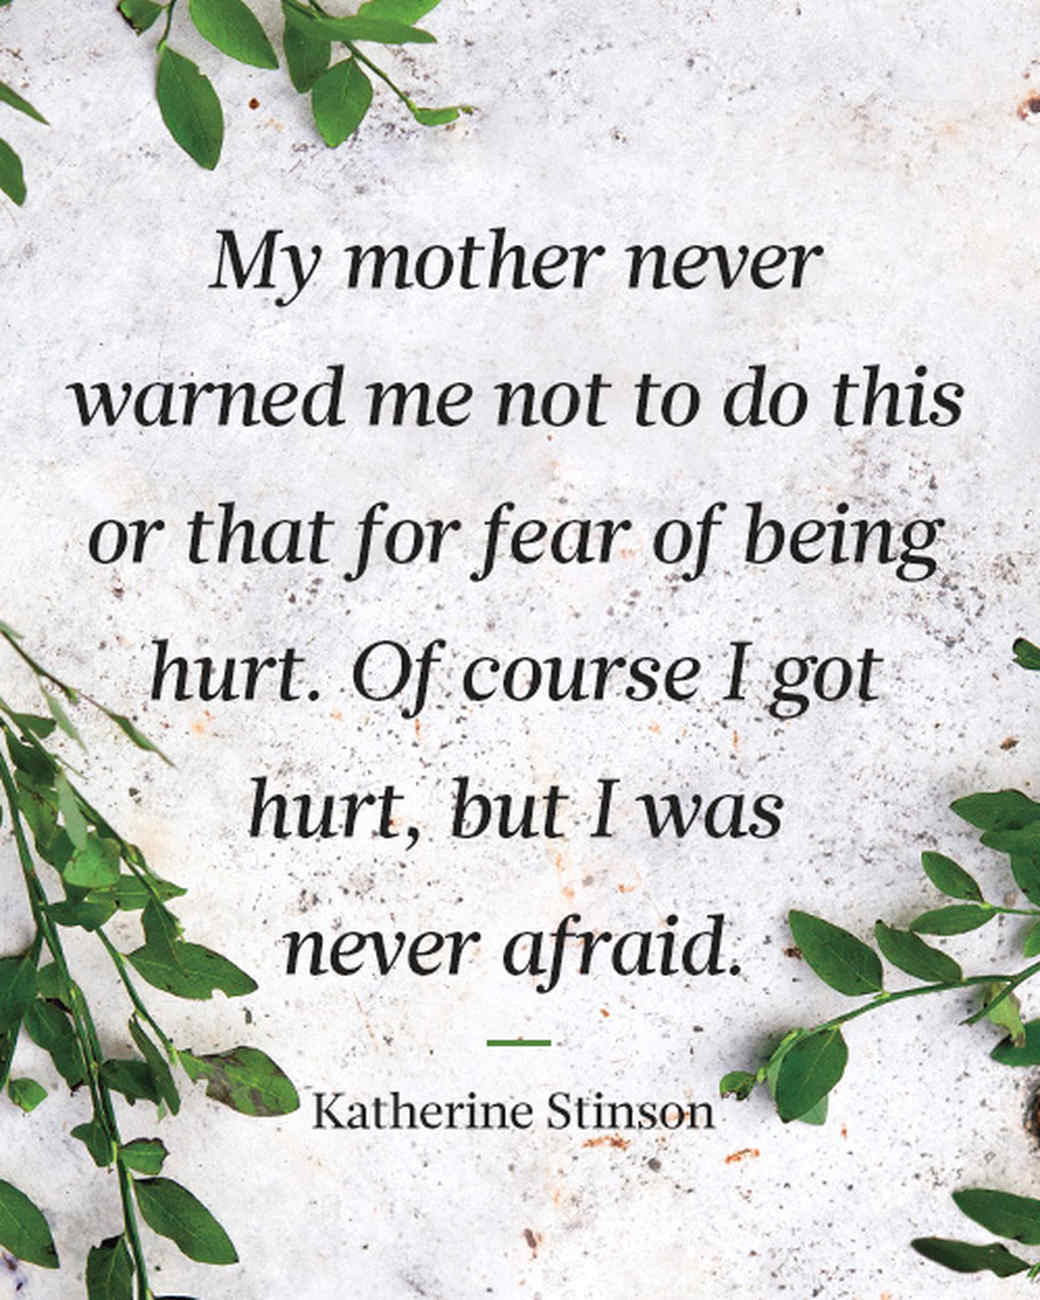 mothersdayquotes7-0315.jpg